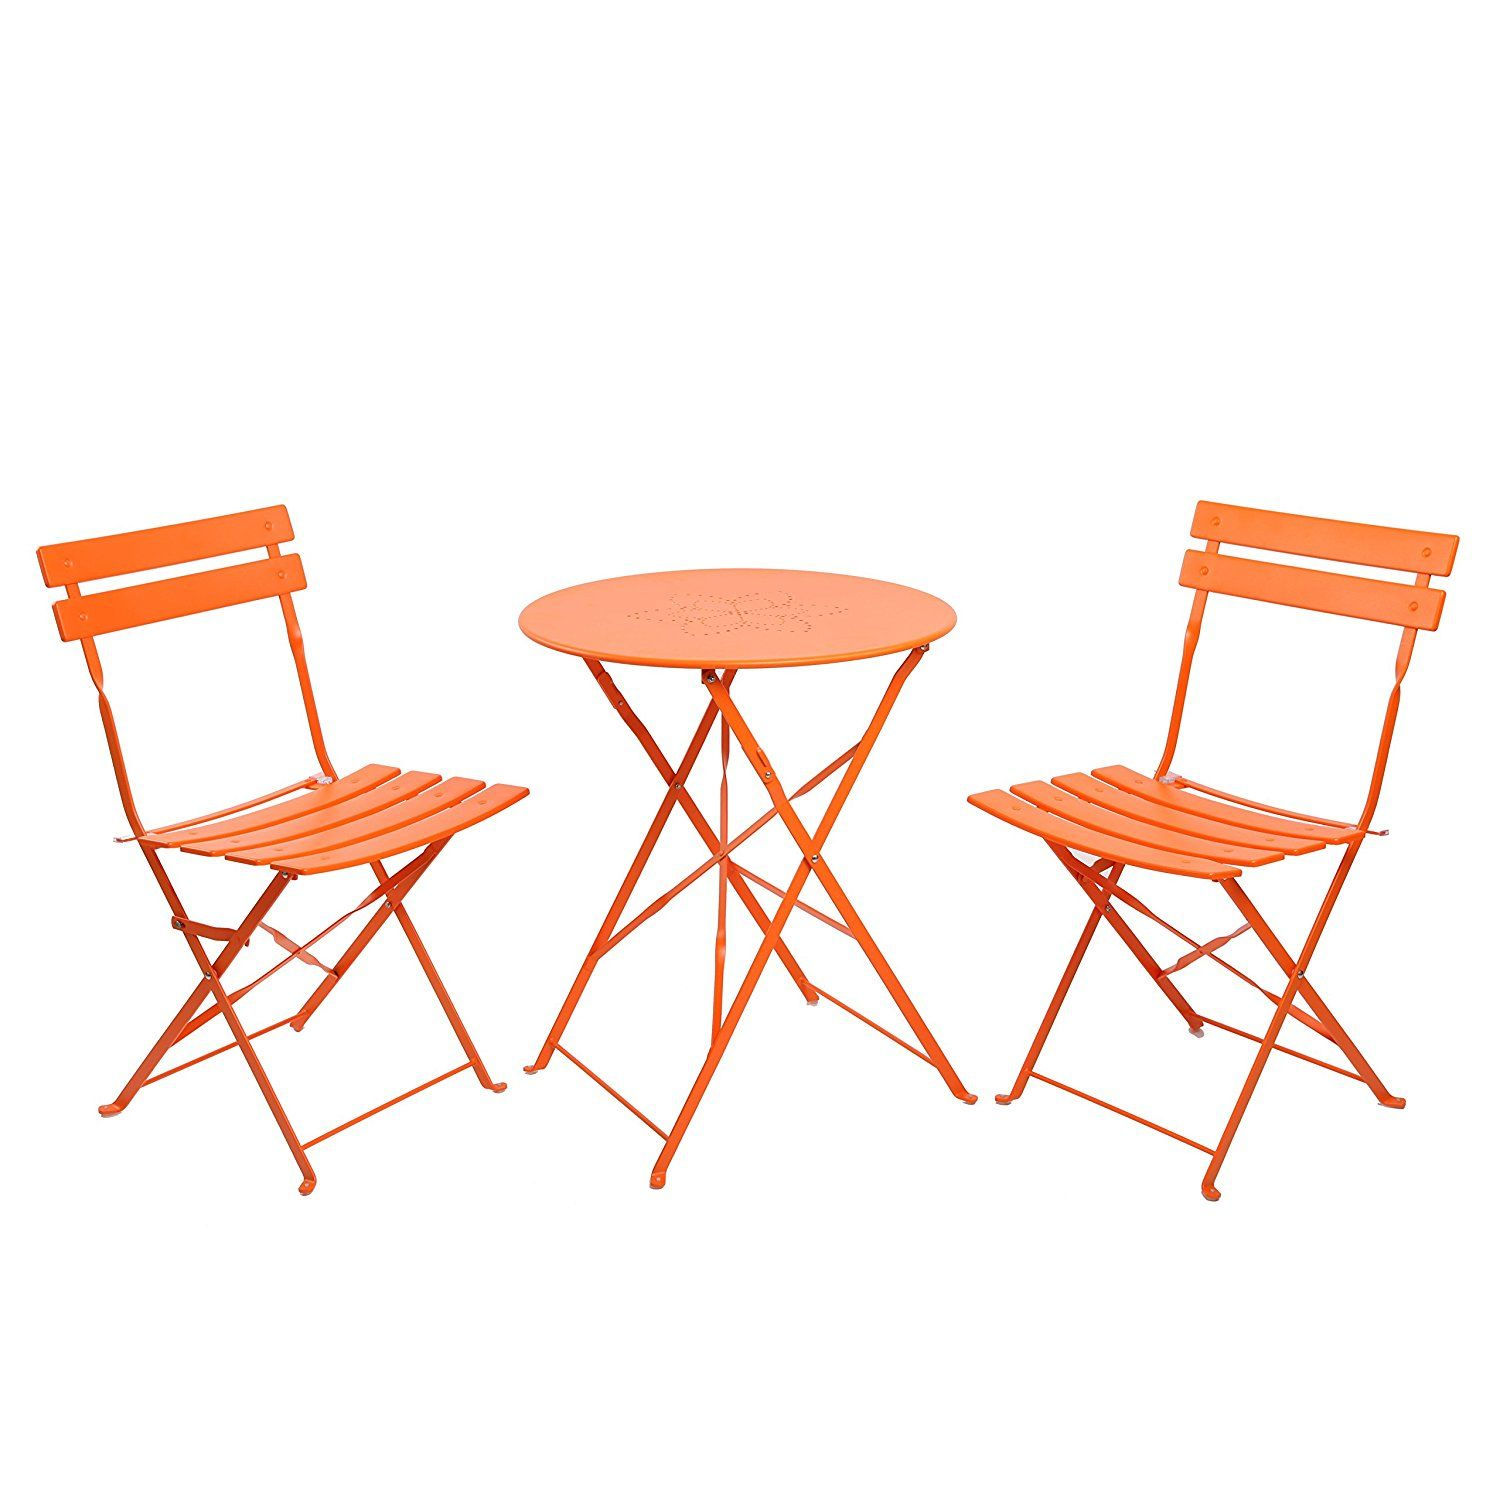 Swell Amazon Com Finnhomy 3 Piece Steel Folding Table And Chair Andrewgaddart Wooden Chair Designs For Living Room Andrewgaddartcom